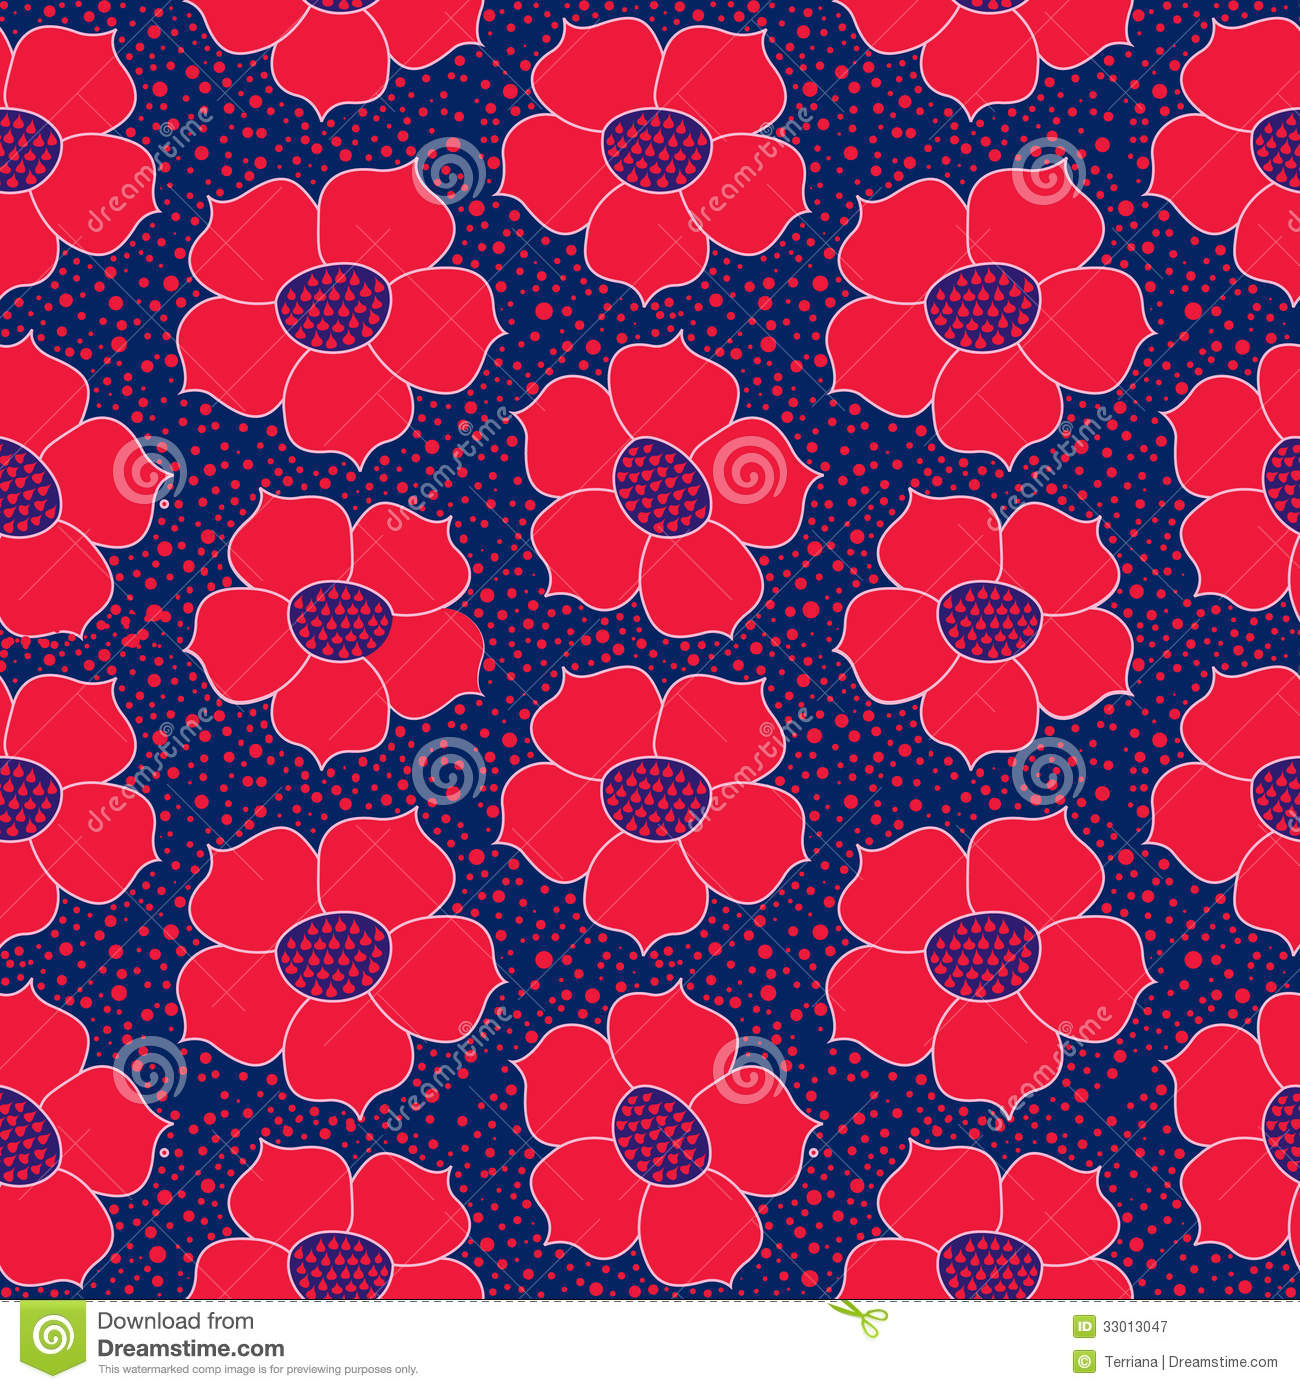 Batik pattern background in vector royalty free stock photos image - Floral Seamless Background Red Flower Pattern Royalty